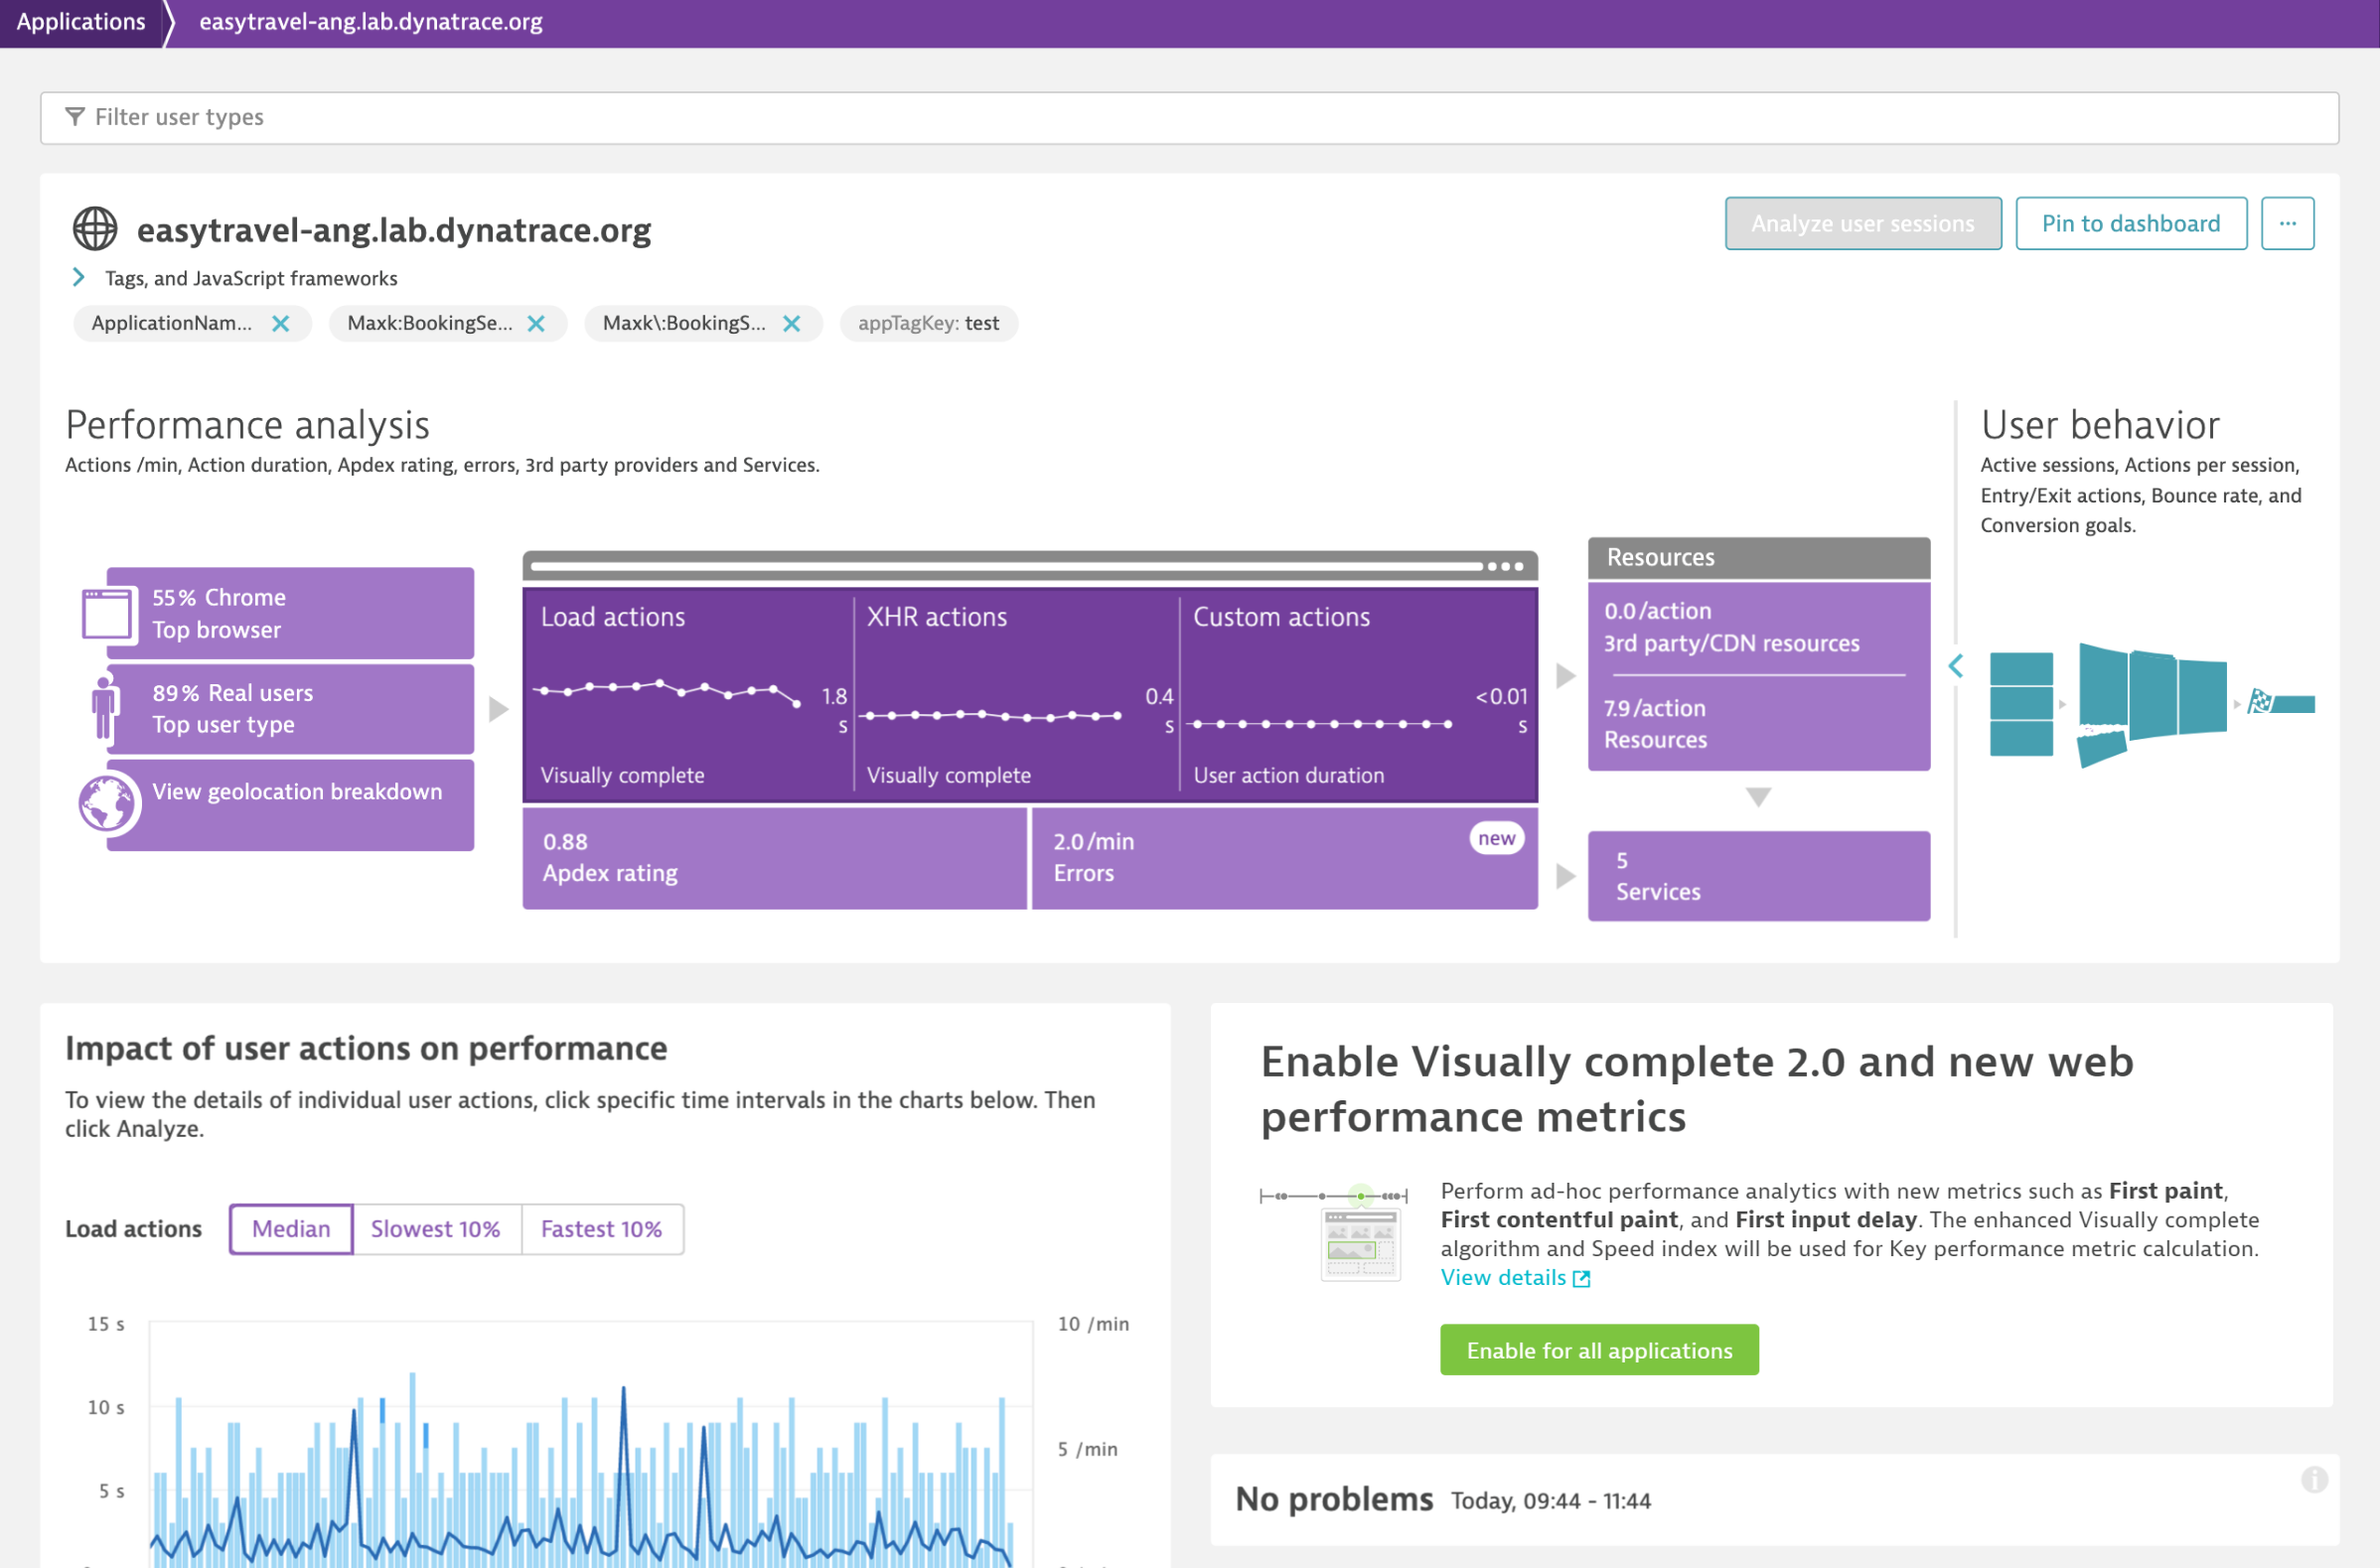 Enable enhanced Visually complete on the application overview page